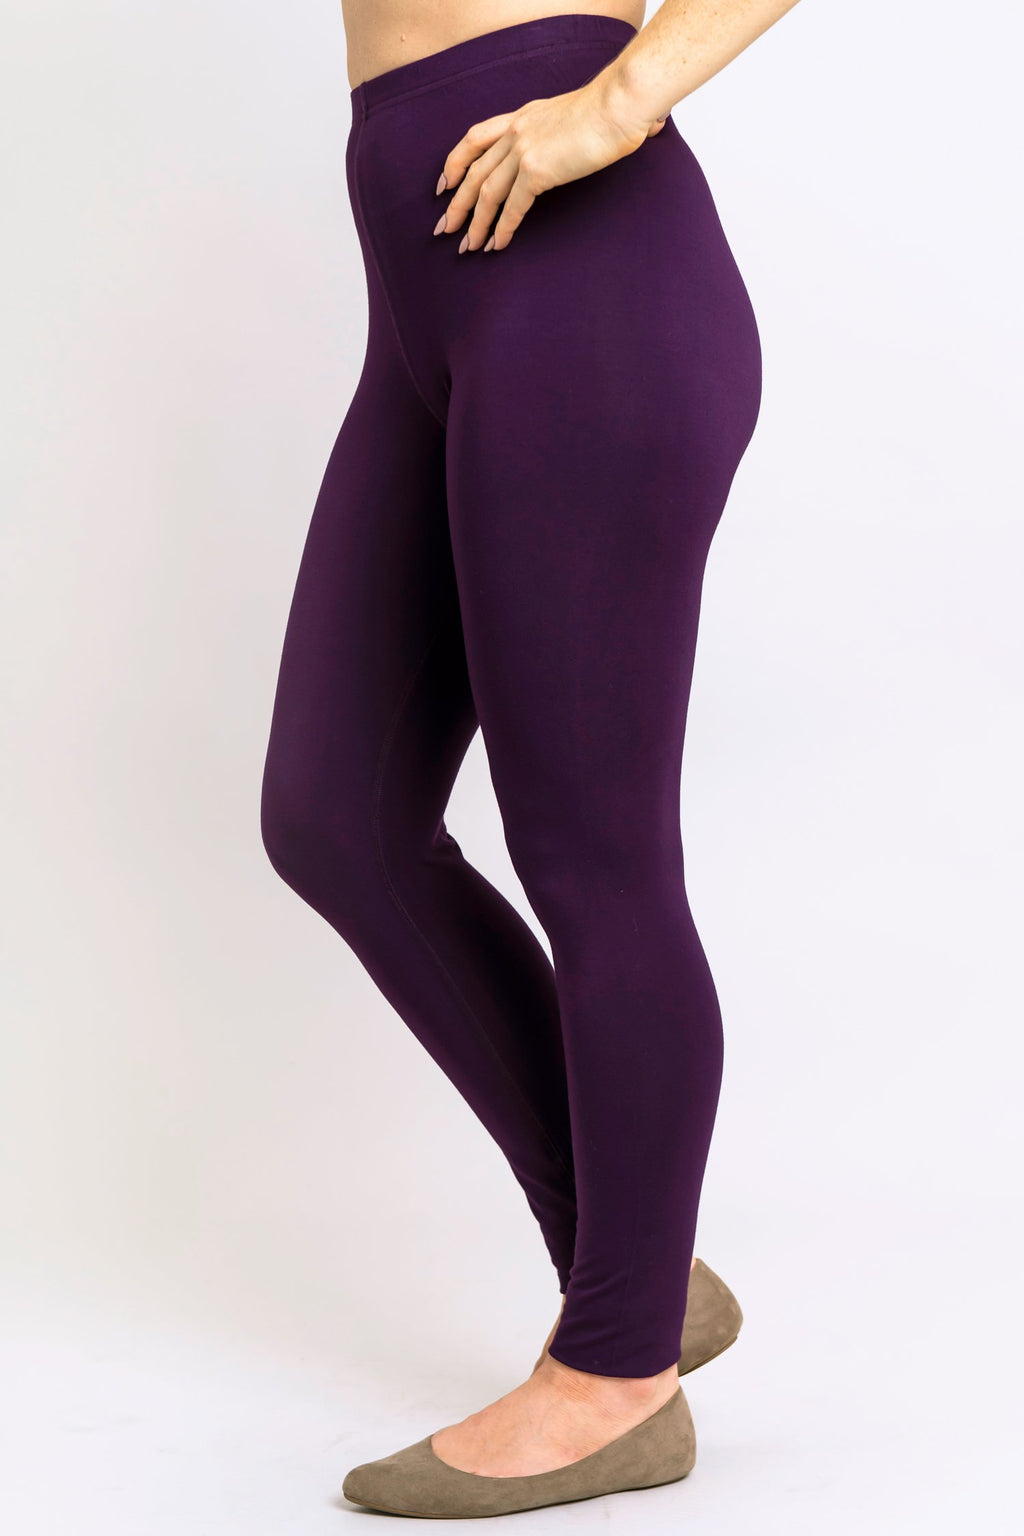 Ruby Legging, Royale